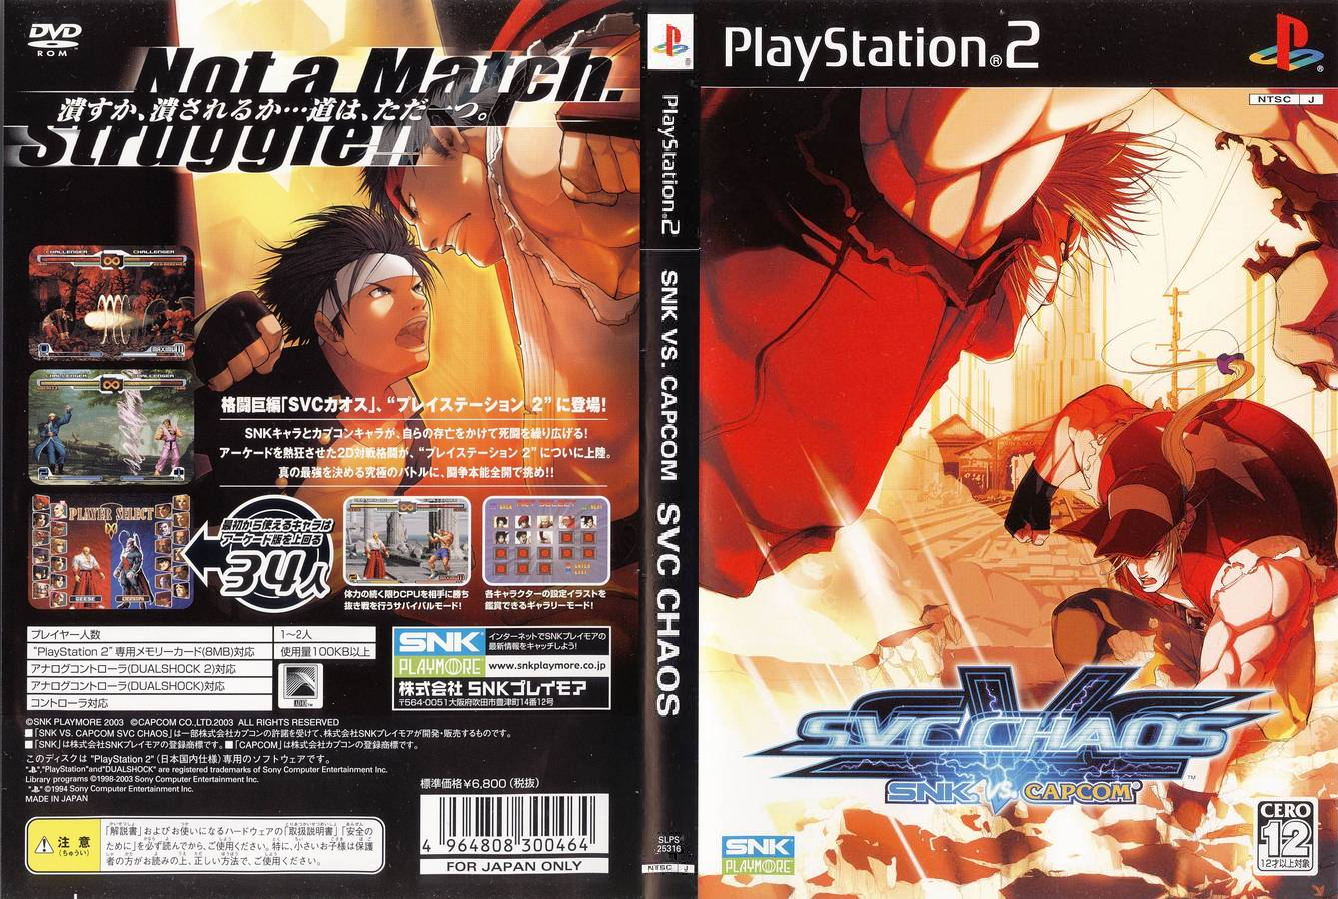 VS TORRENT CAPCOM PS2 BAIXAR 2 SNK